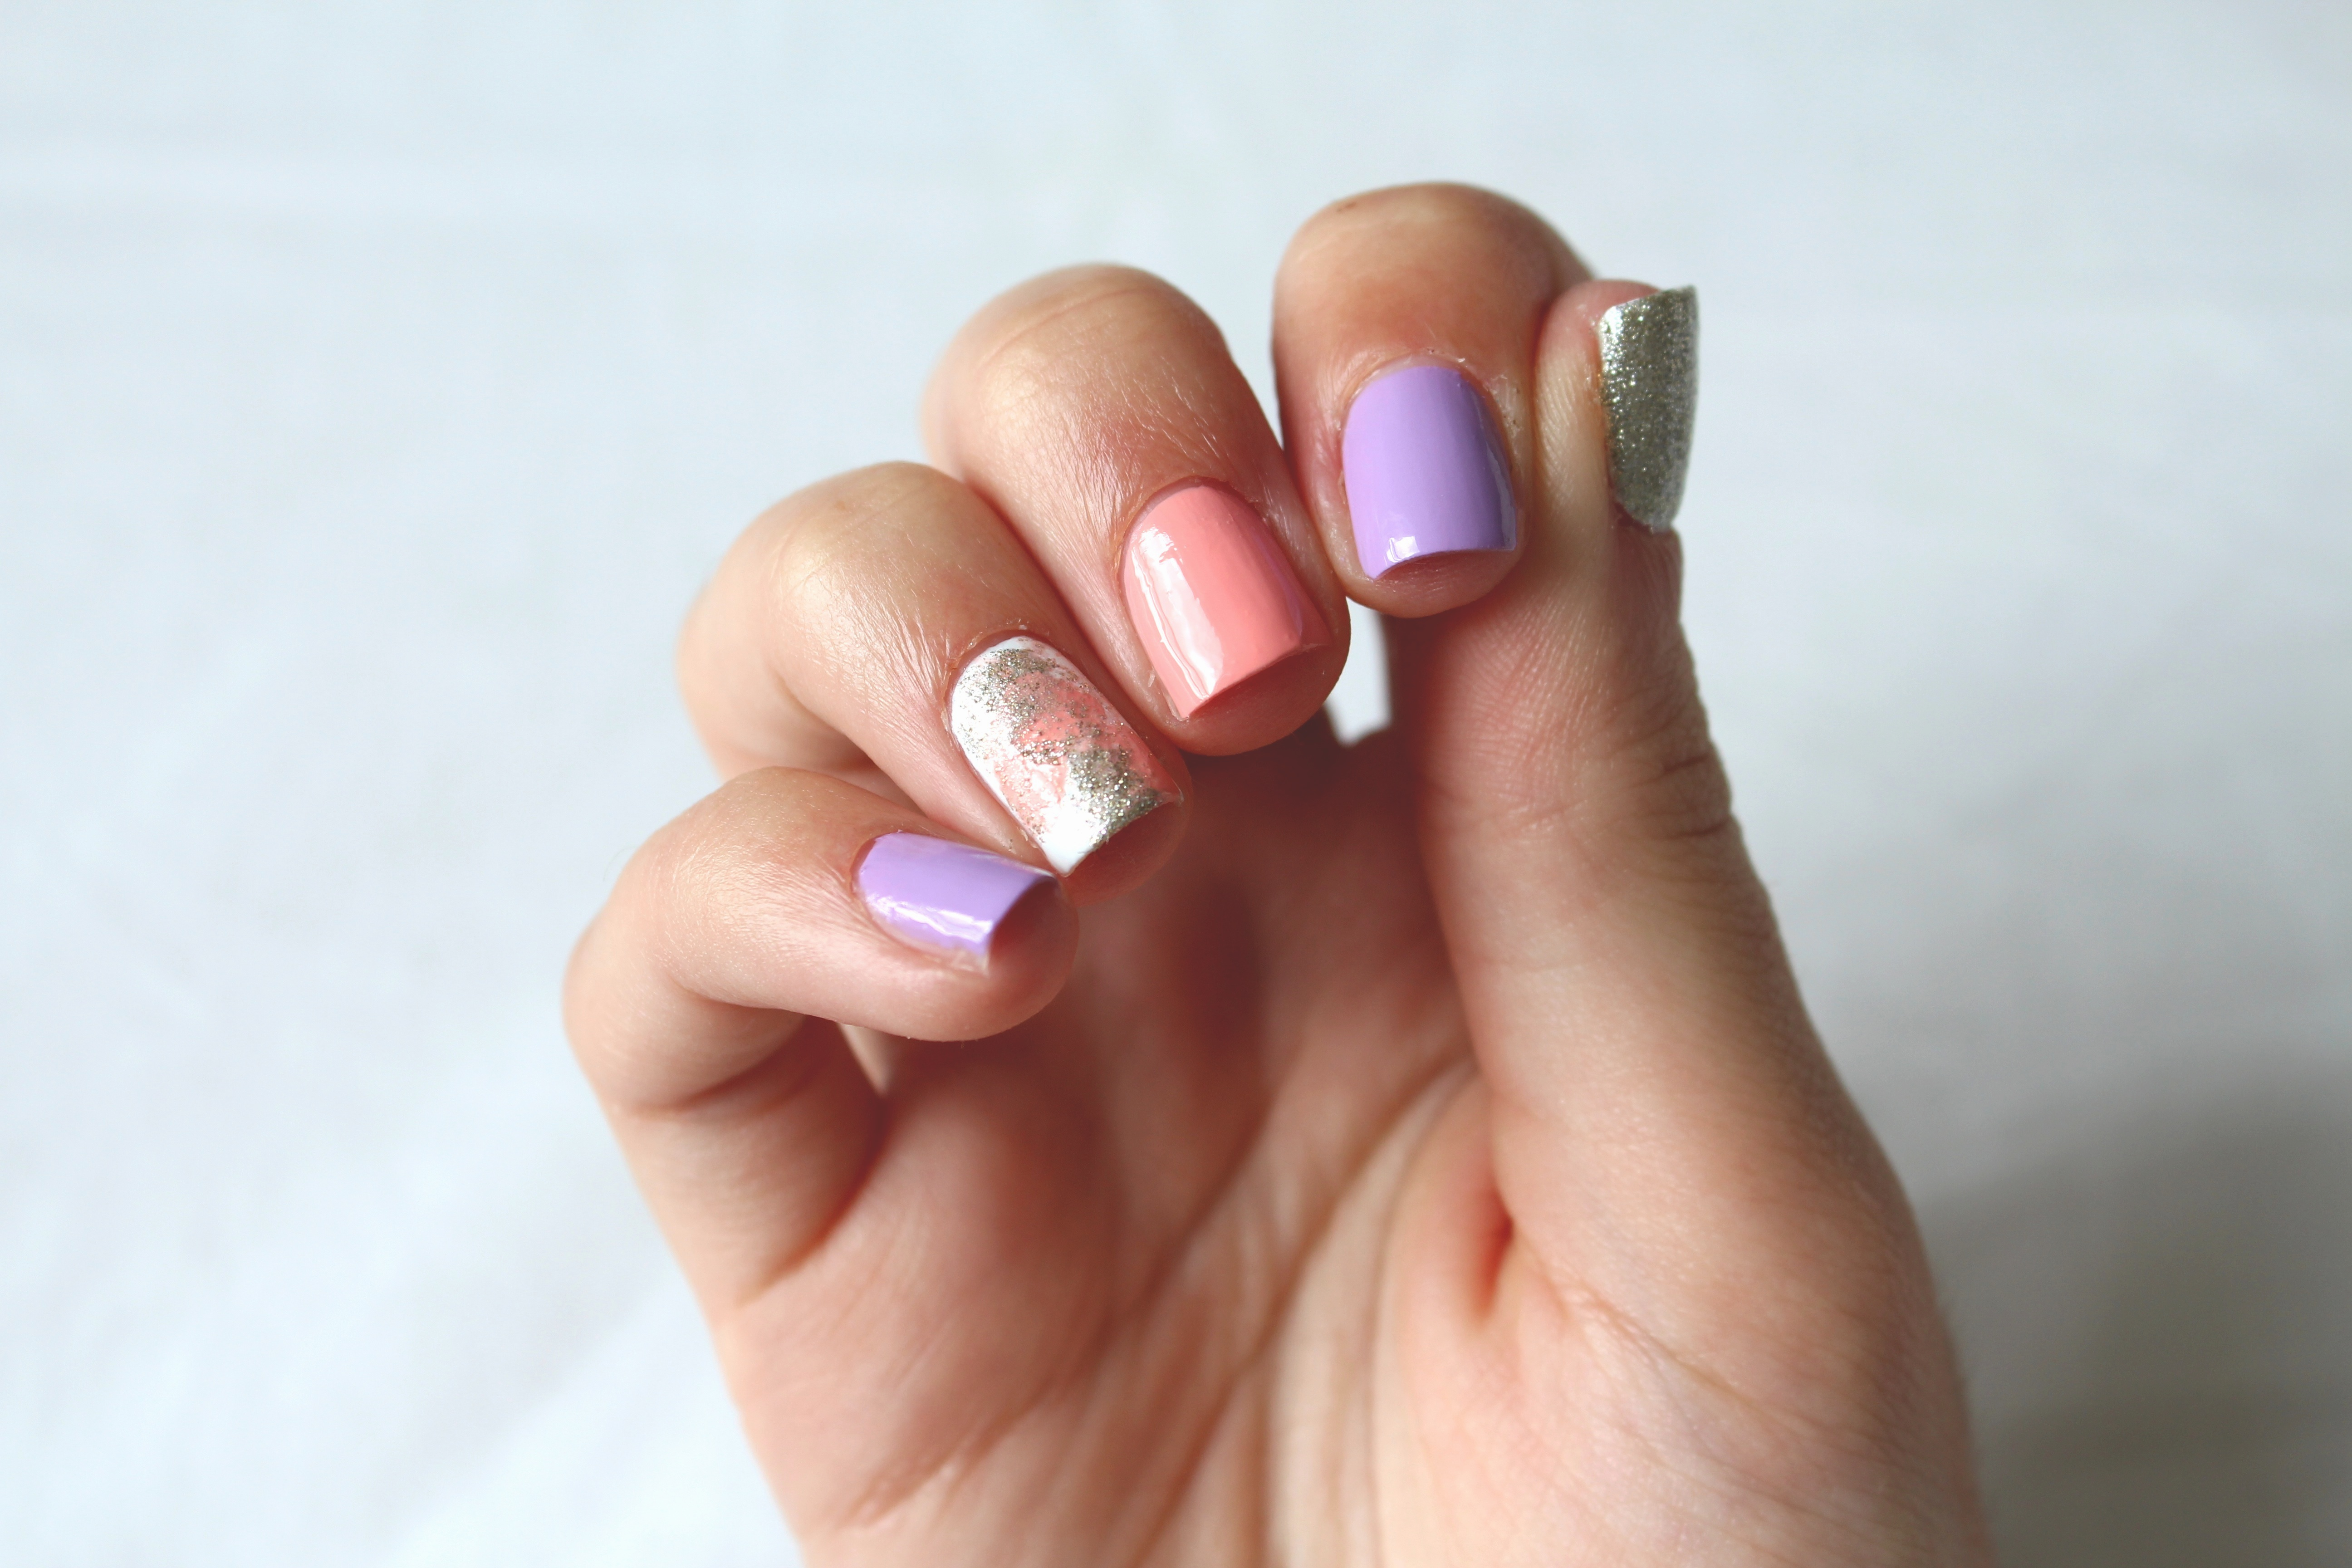 ongles bosseles causes